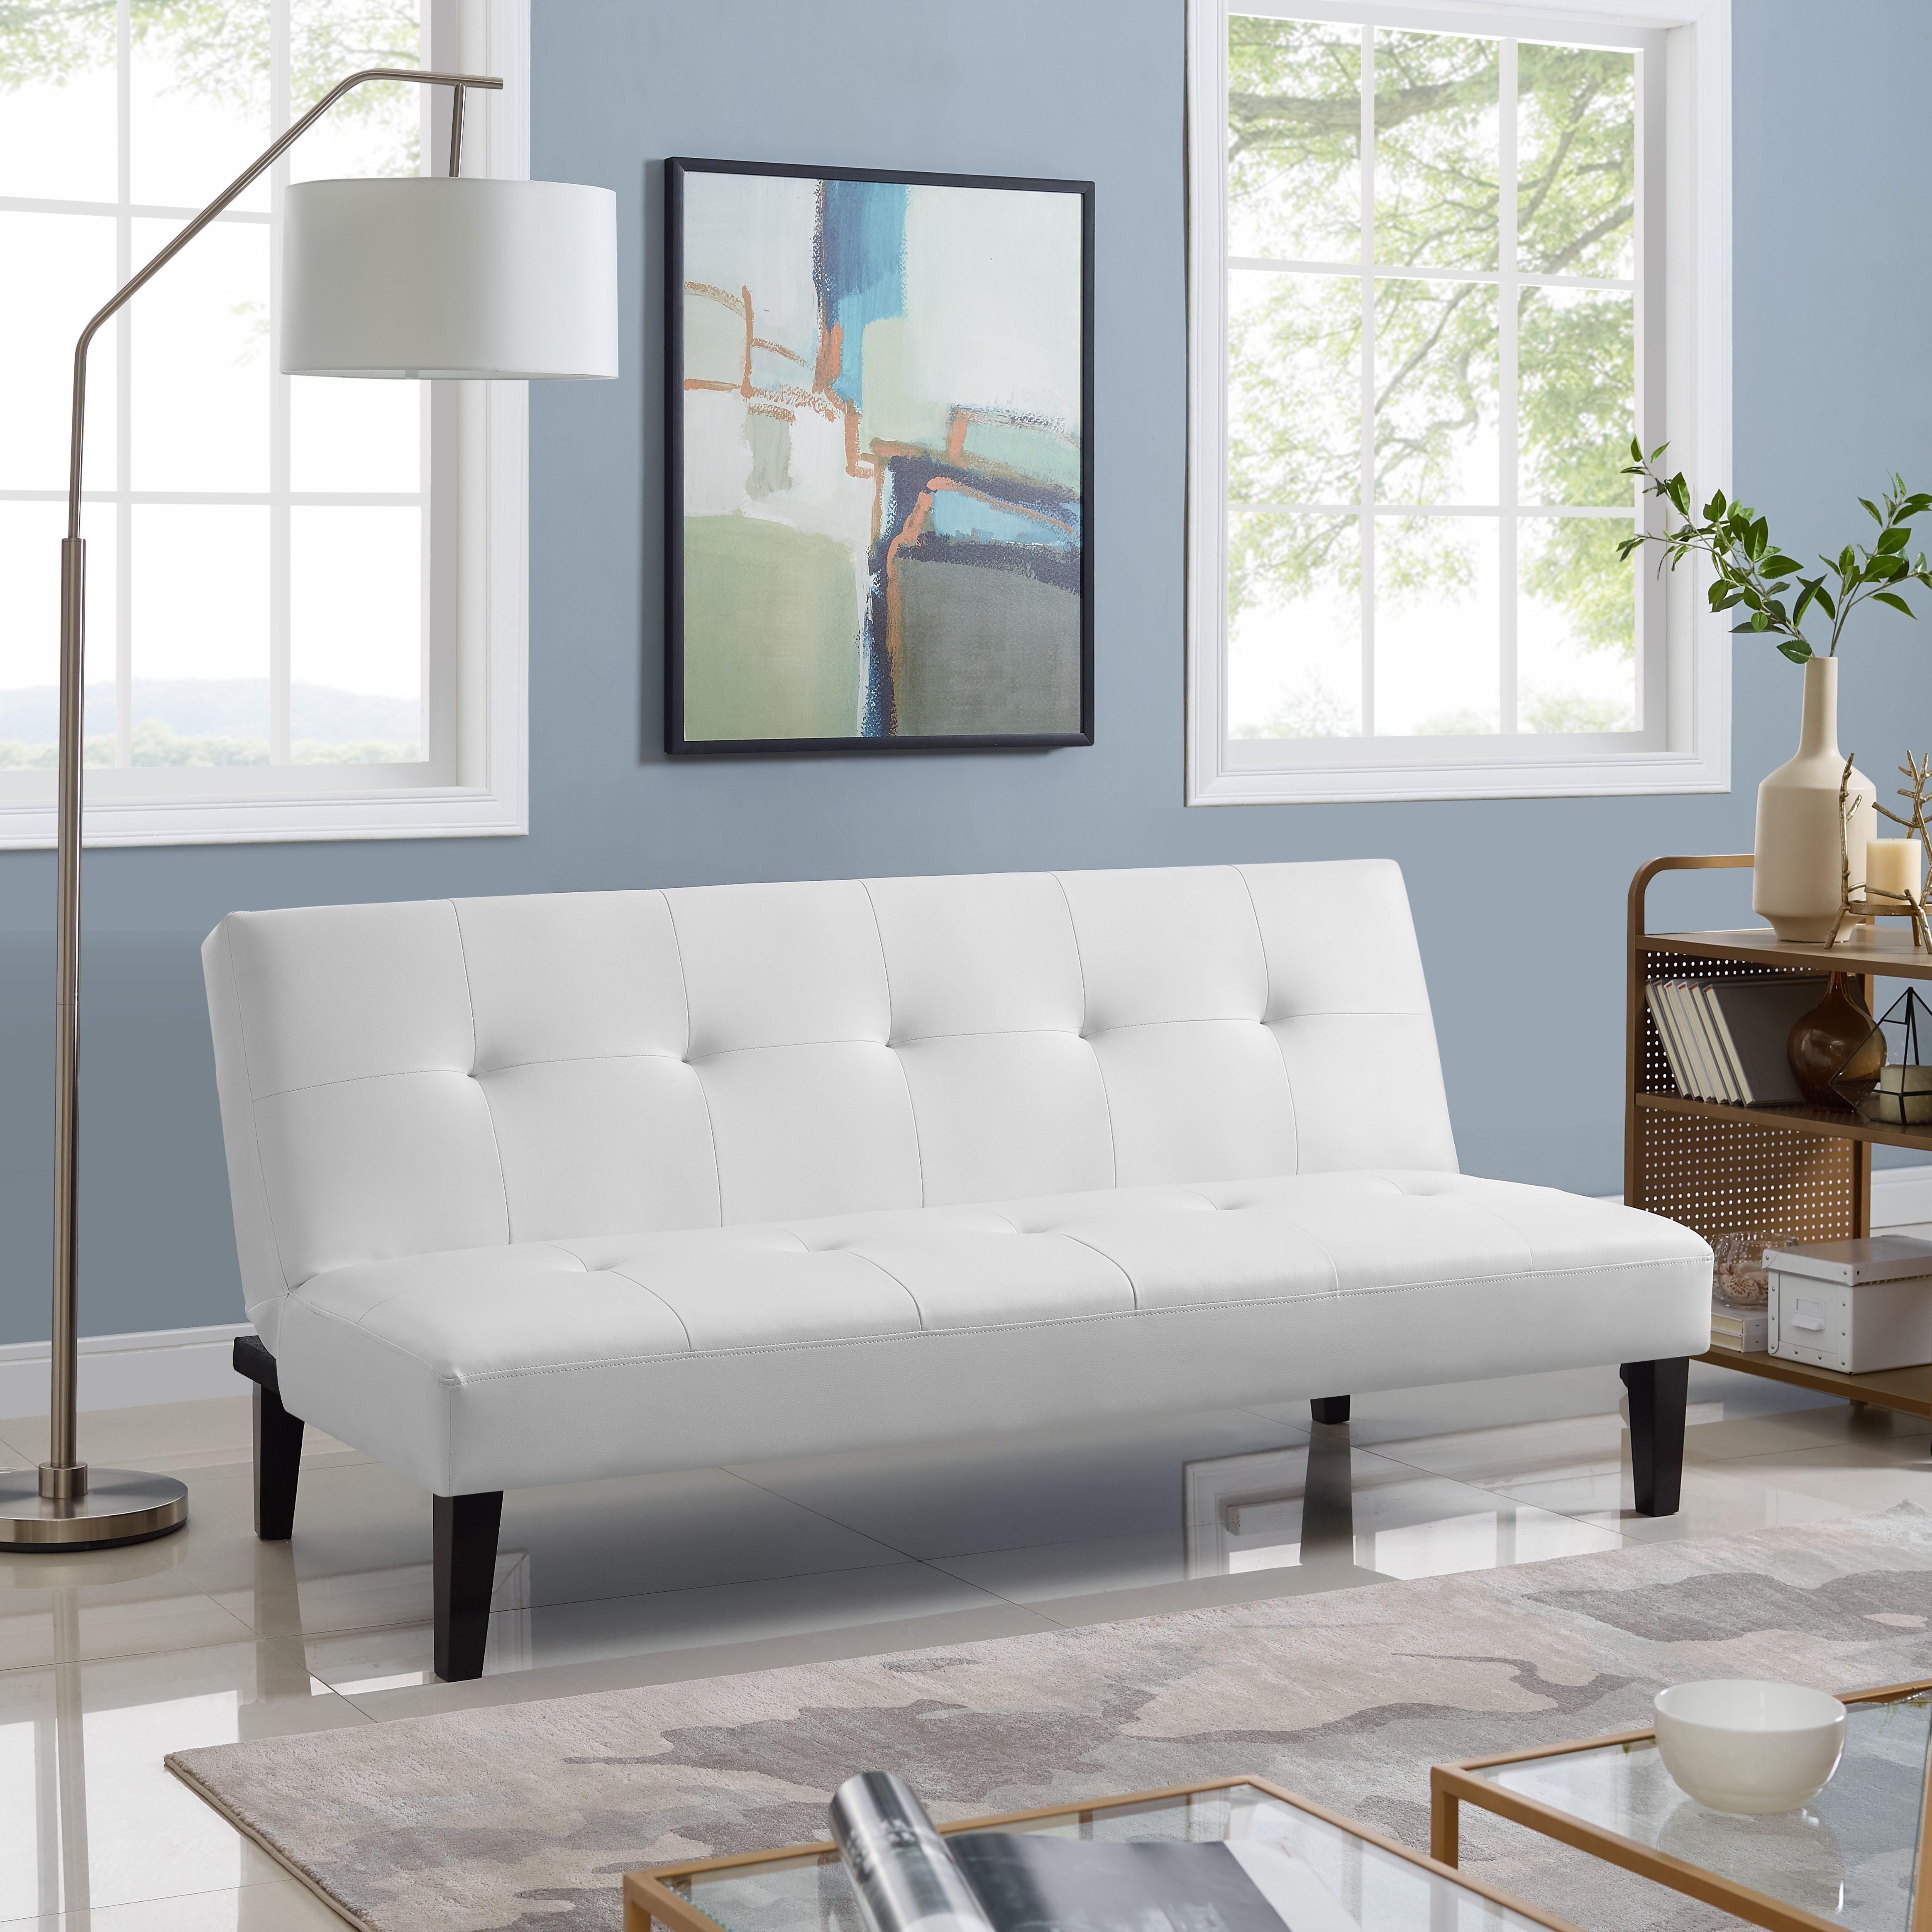 Button Tufted Futon Sofa Bed By Naomi Home Color White Walmart Com In 2020 Couch Alternatives Futon Living Room Futon Sofa Bed